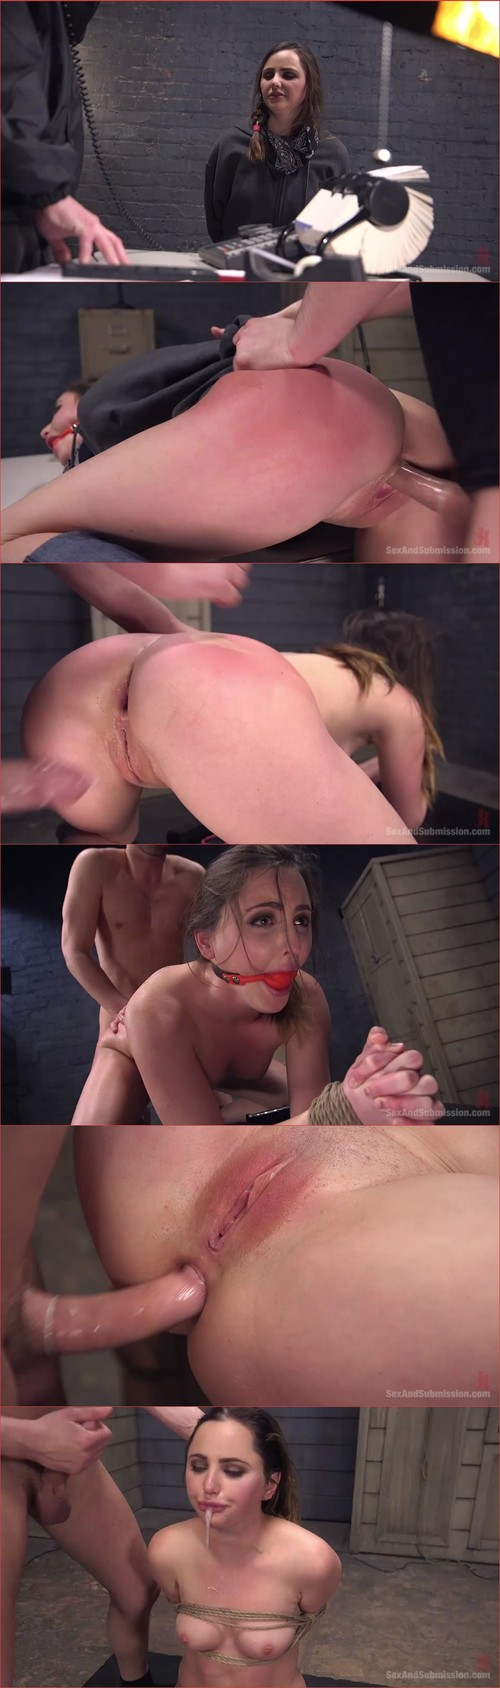 Hope Howell - Anal Vandal